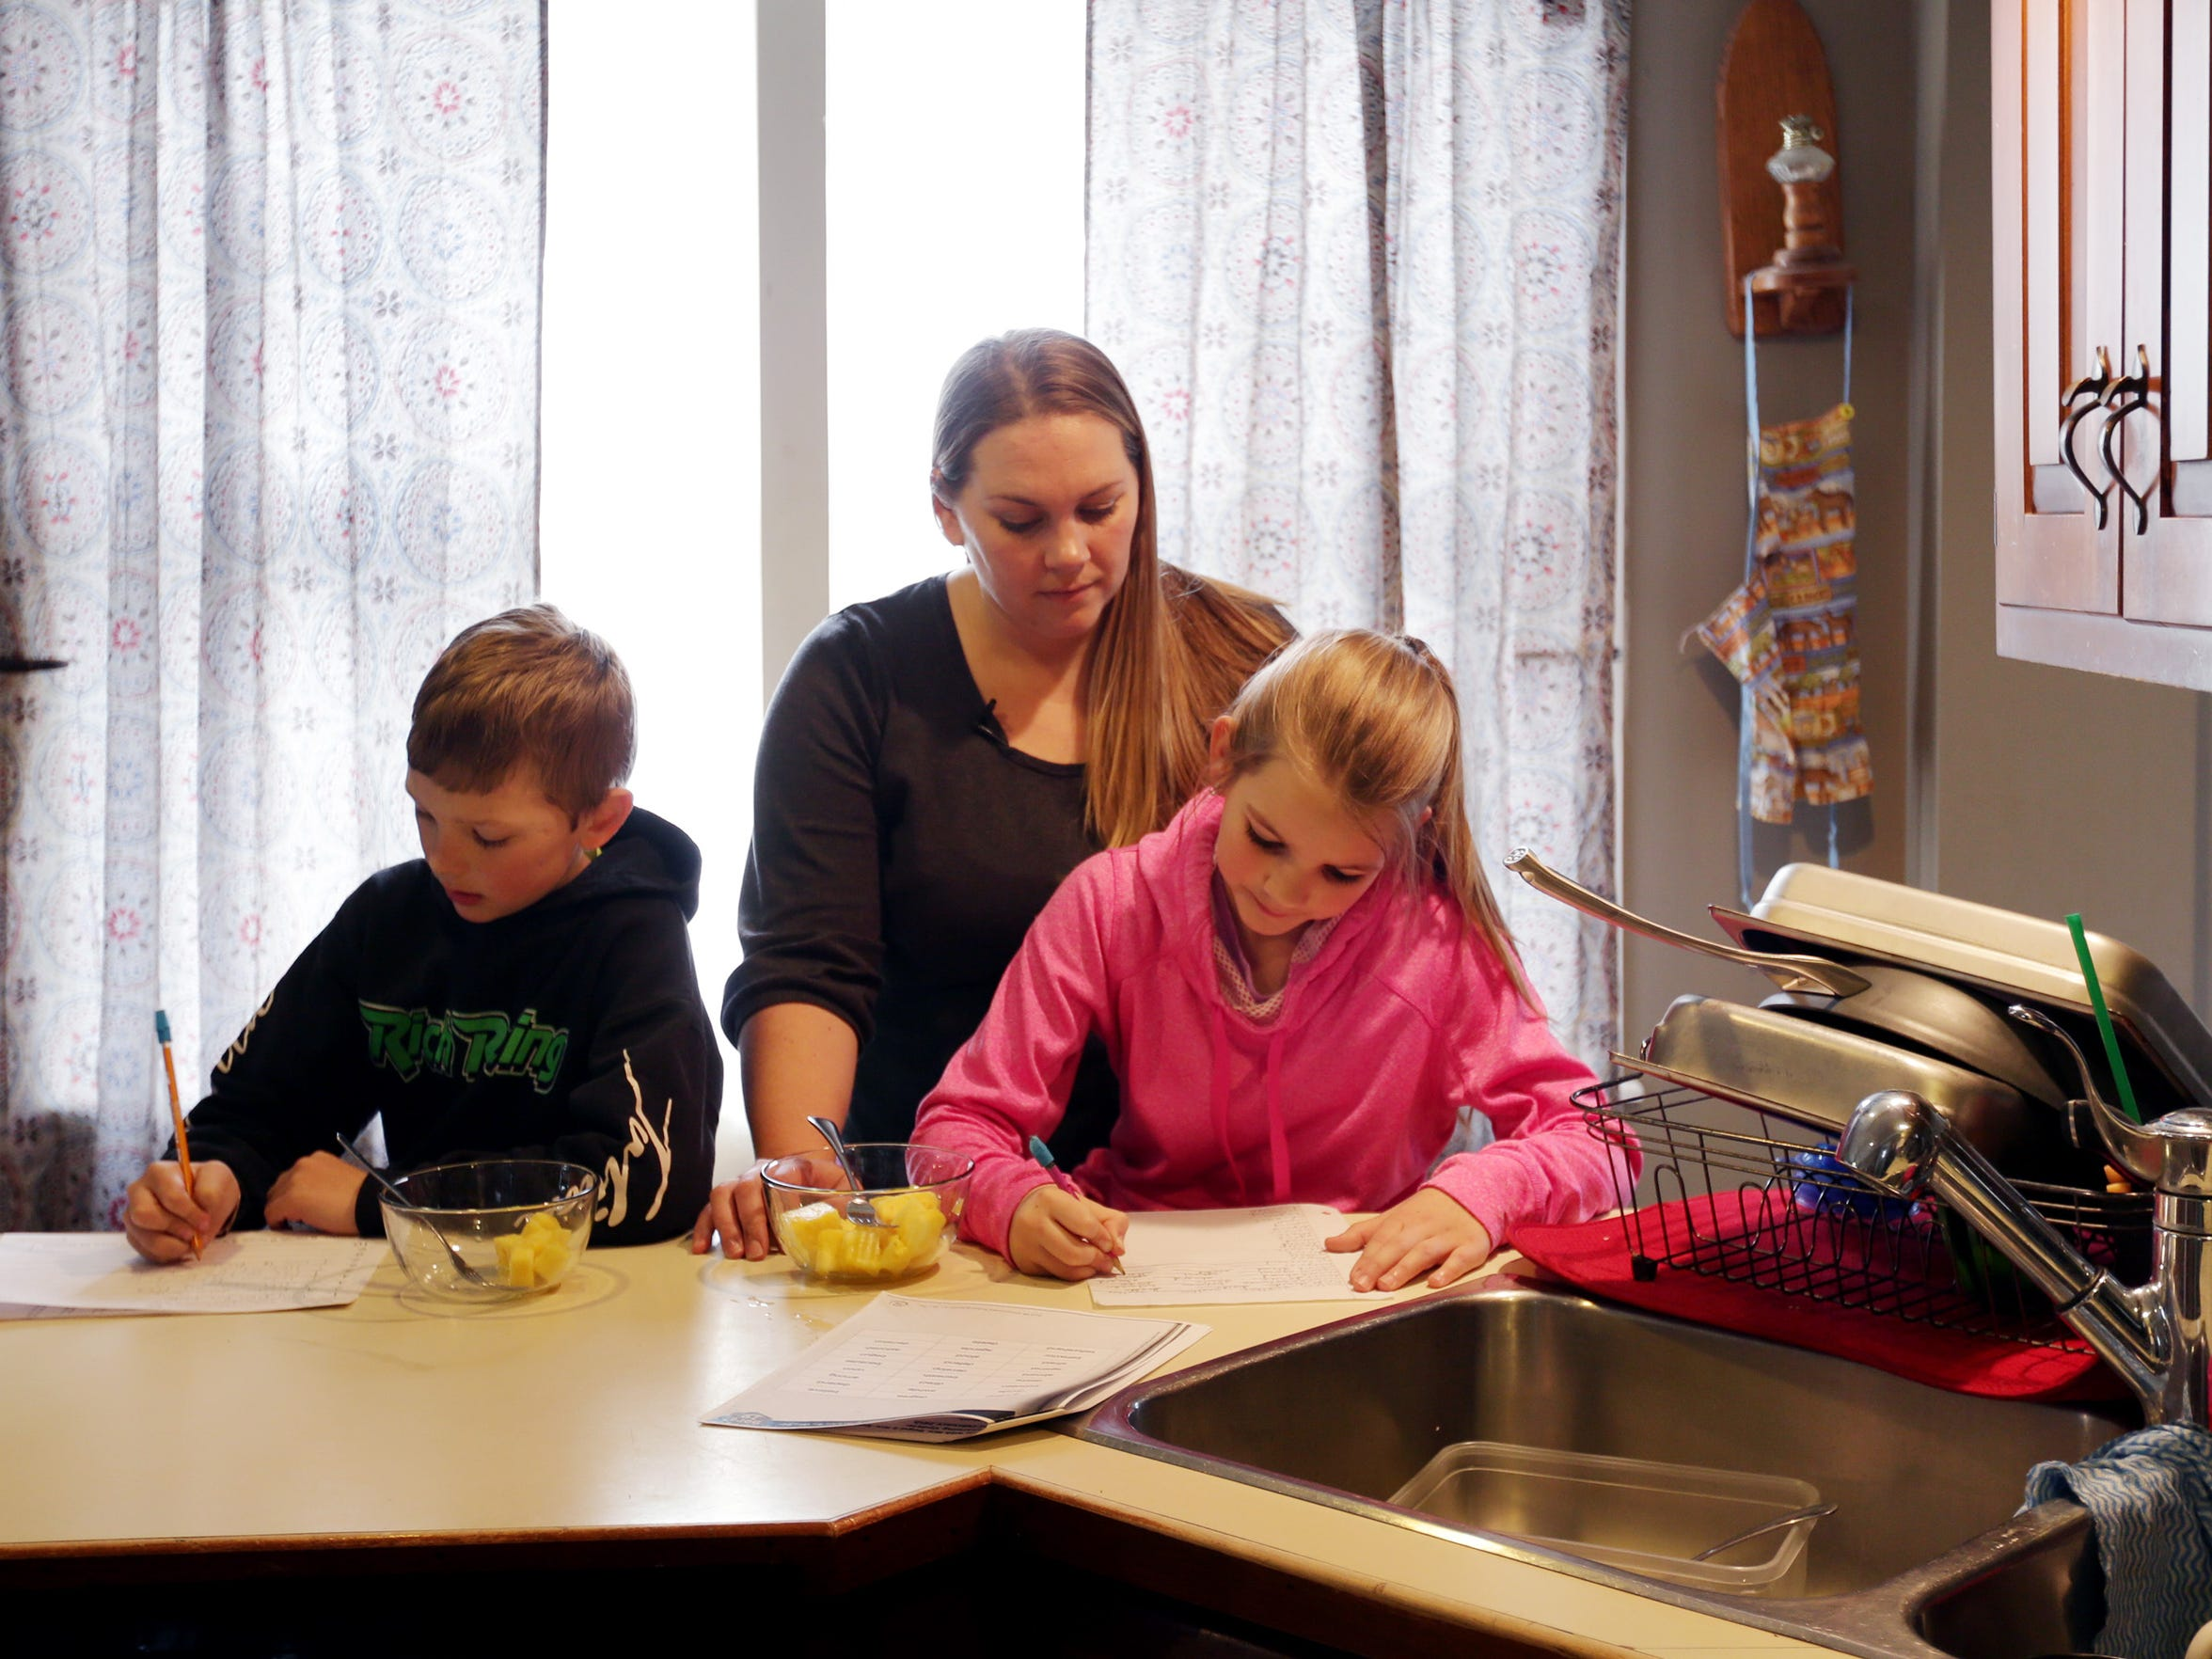 Nicole Rich, 34, helps her children Jamison Rich, 7, left and sister Jersey Rich, 9, with their homework at home March 3, 2016, in Ithaca, N.Y. Recent blood tests on Jamison showed lead results at twice the level for young children.